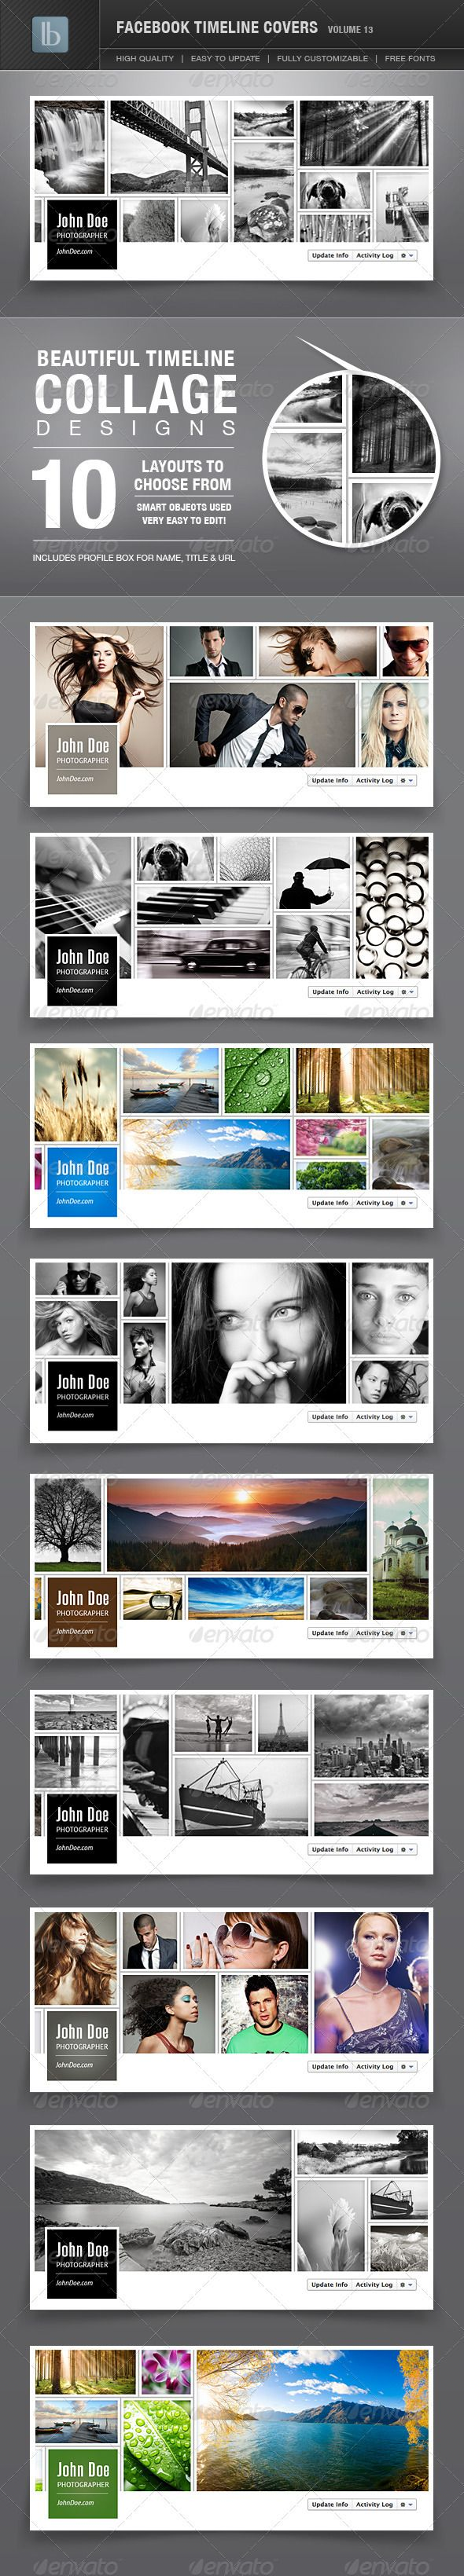 Facebook Timeline Covers | Volume 13 - GraphicRiver Item for Sale web design